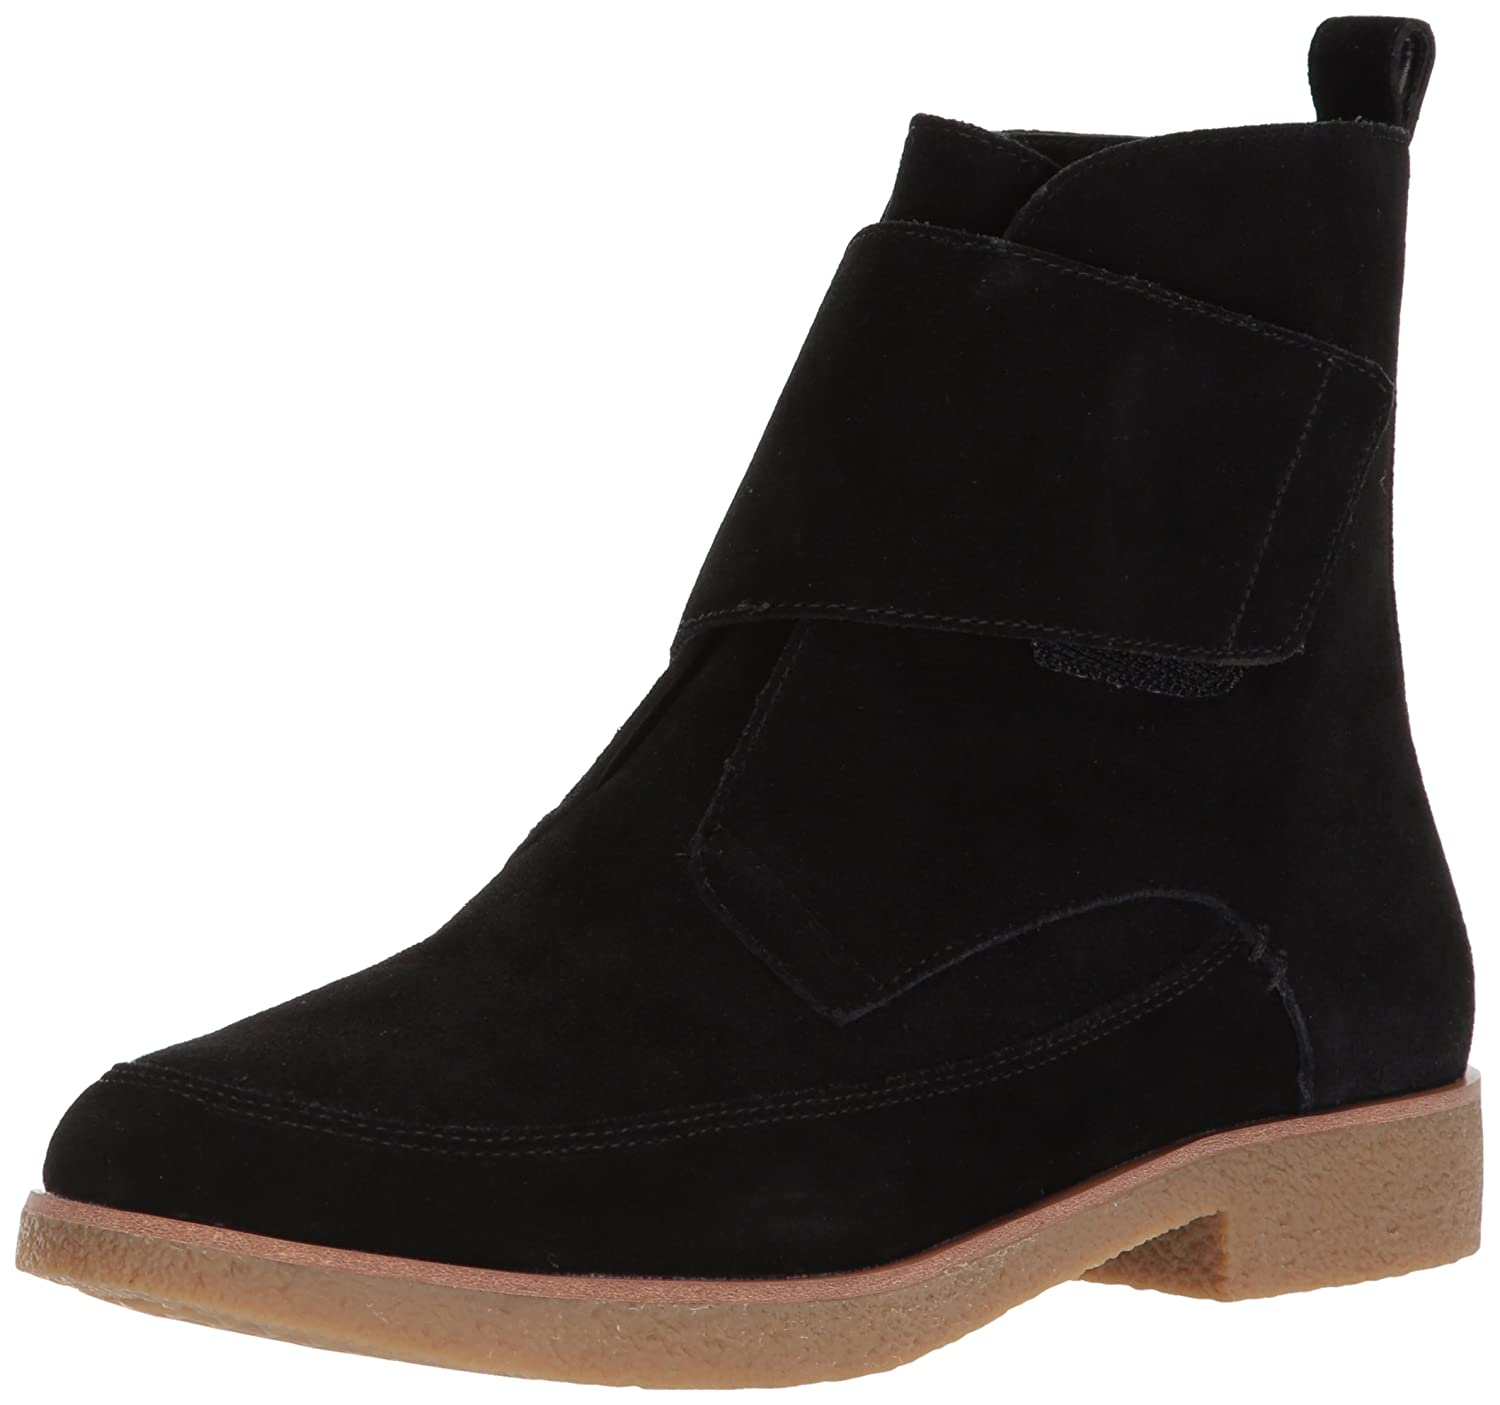 Aerosoles Women's Full Moon Ankle Boot B0756HBXXZ 6 B(M) US|Black Suede